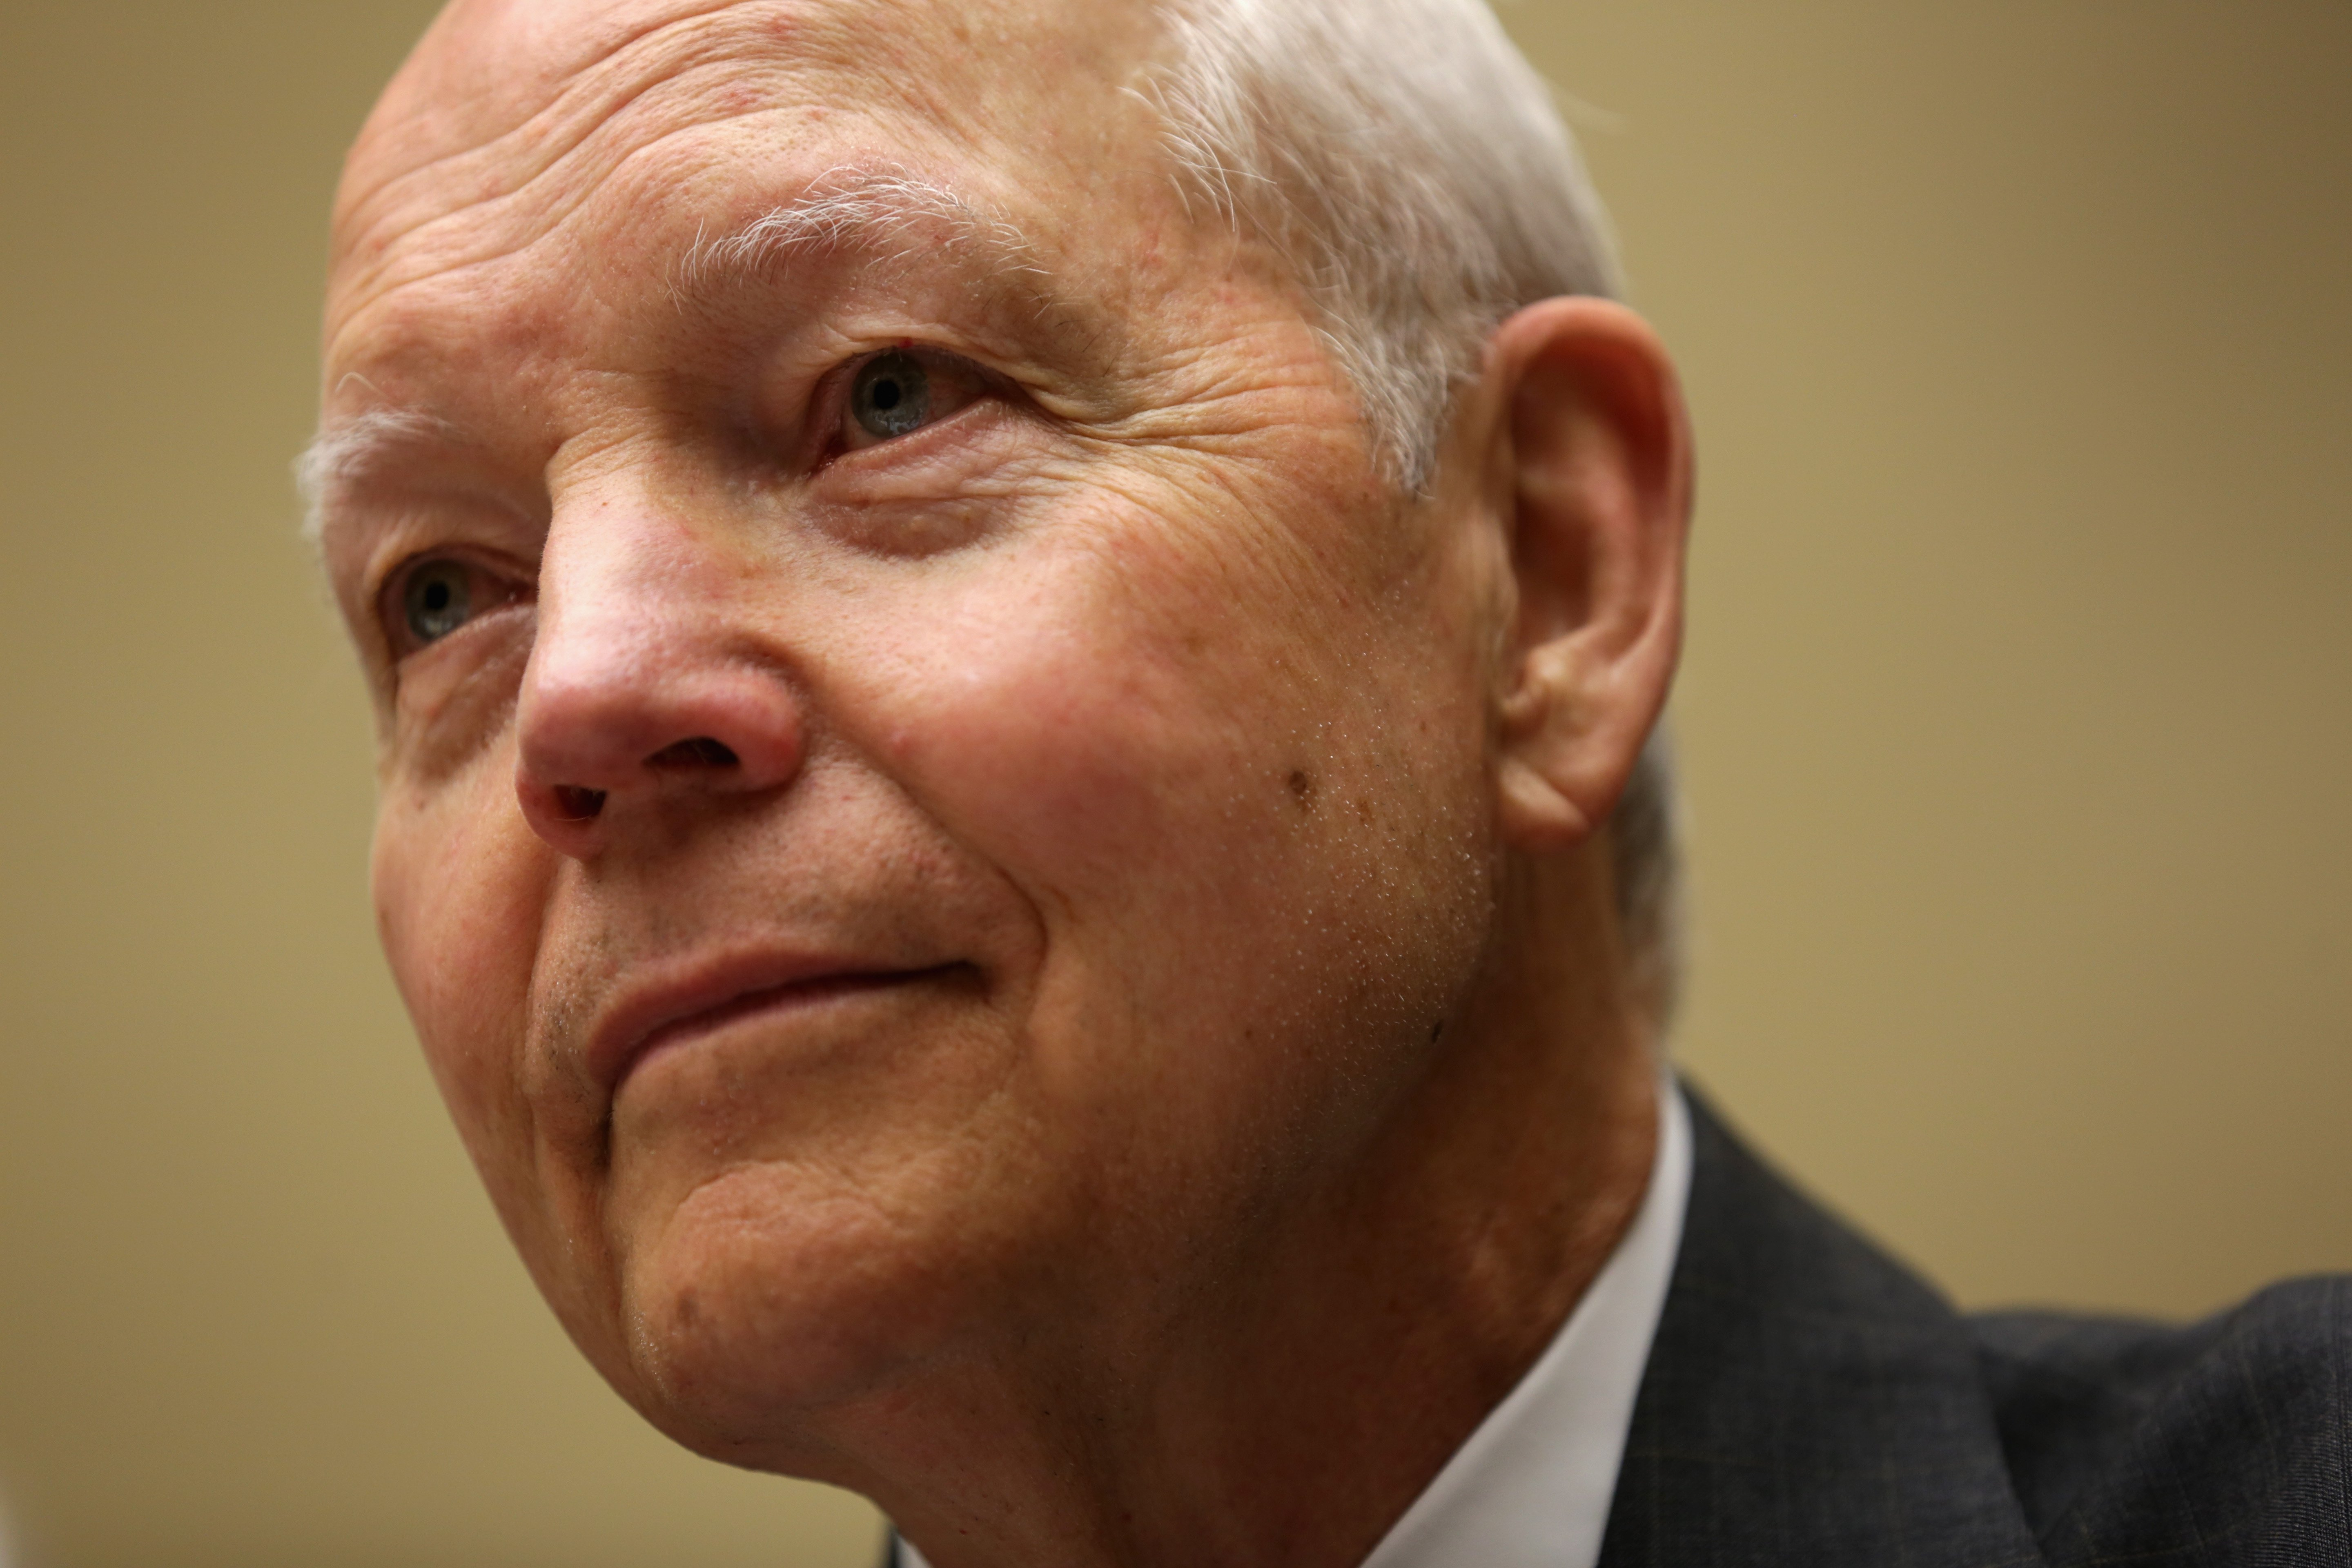 Internal Revenue Service Commissioner John Koskinen testifies during a hearing before the Government Operations Subcommittee of the House Oversight and Government Reform Committee July 9, 2014 on Capitol Hill in Washington, D.C.